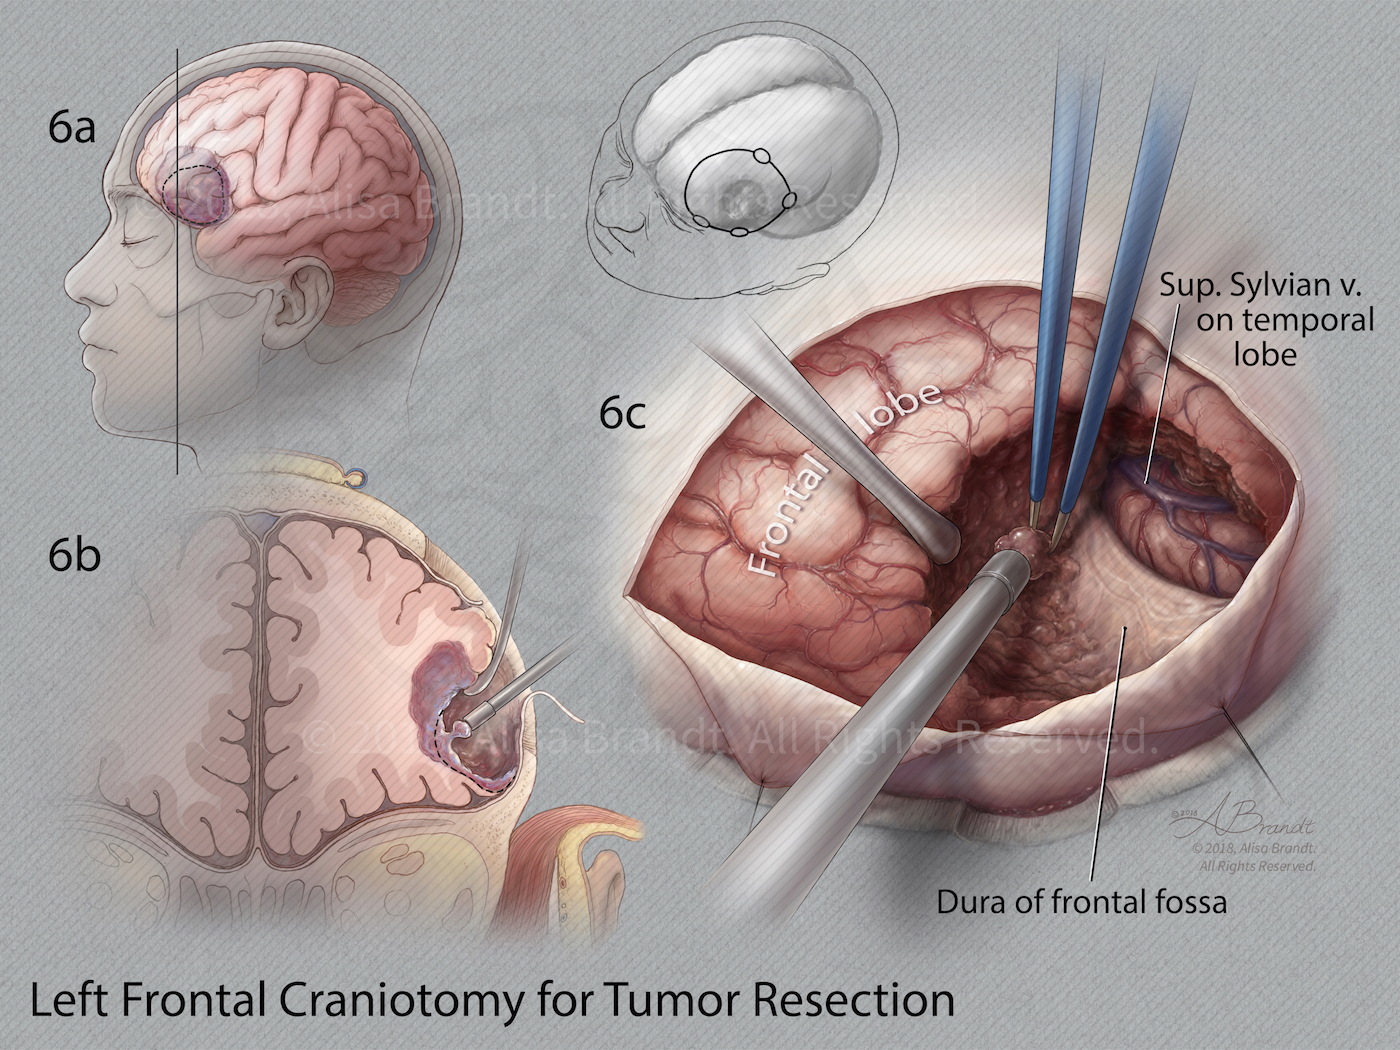 Left frontal craniotomy surgical illustration